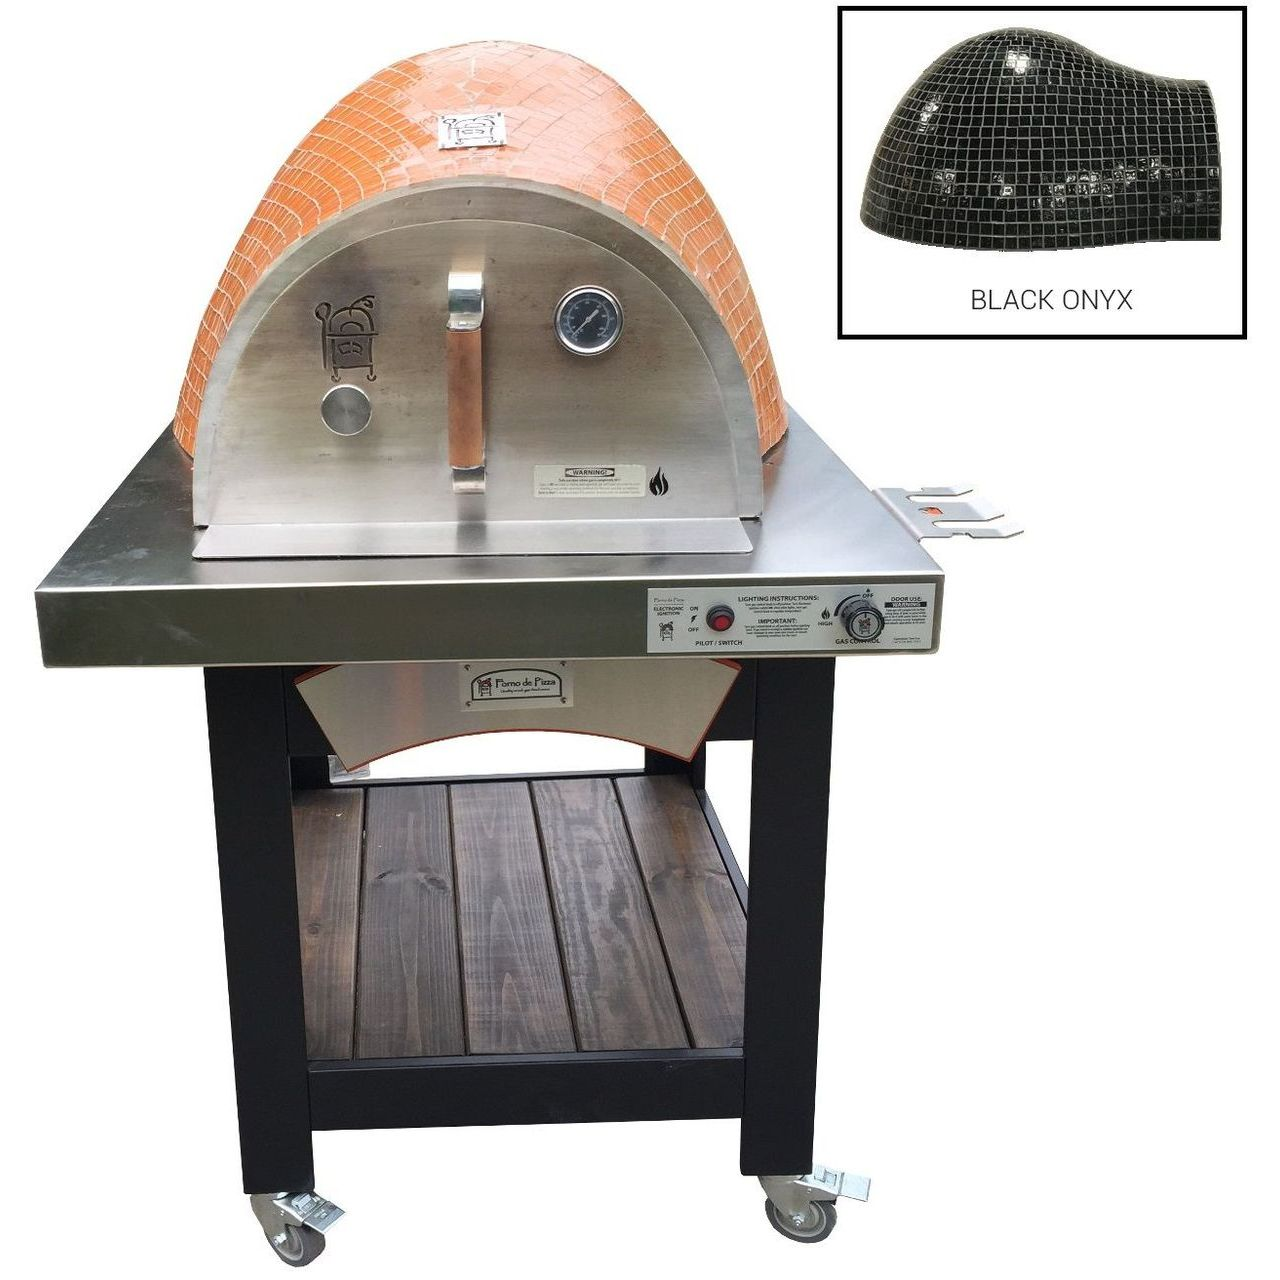 HPC Forno Hybrid Gas/Wood Oven With EI & Cart in Black Onyx - LP